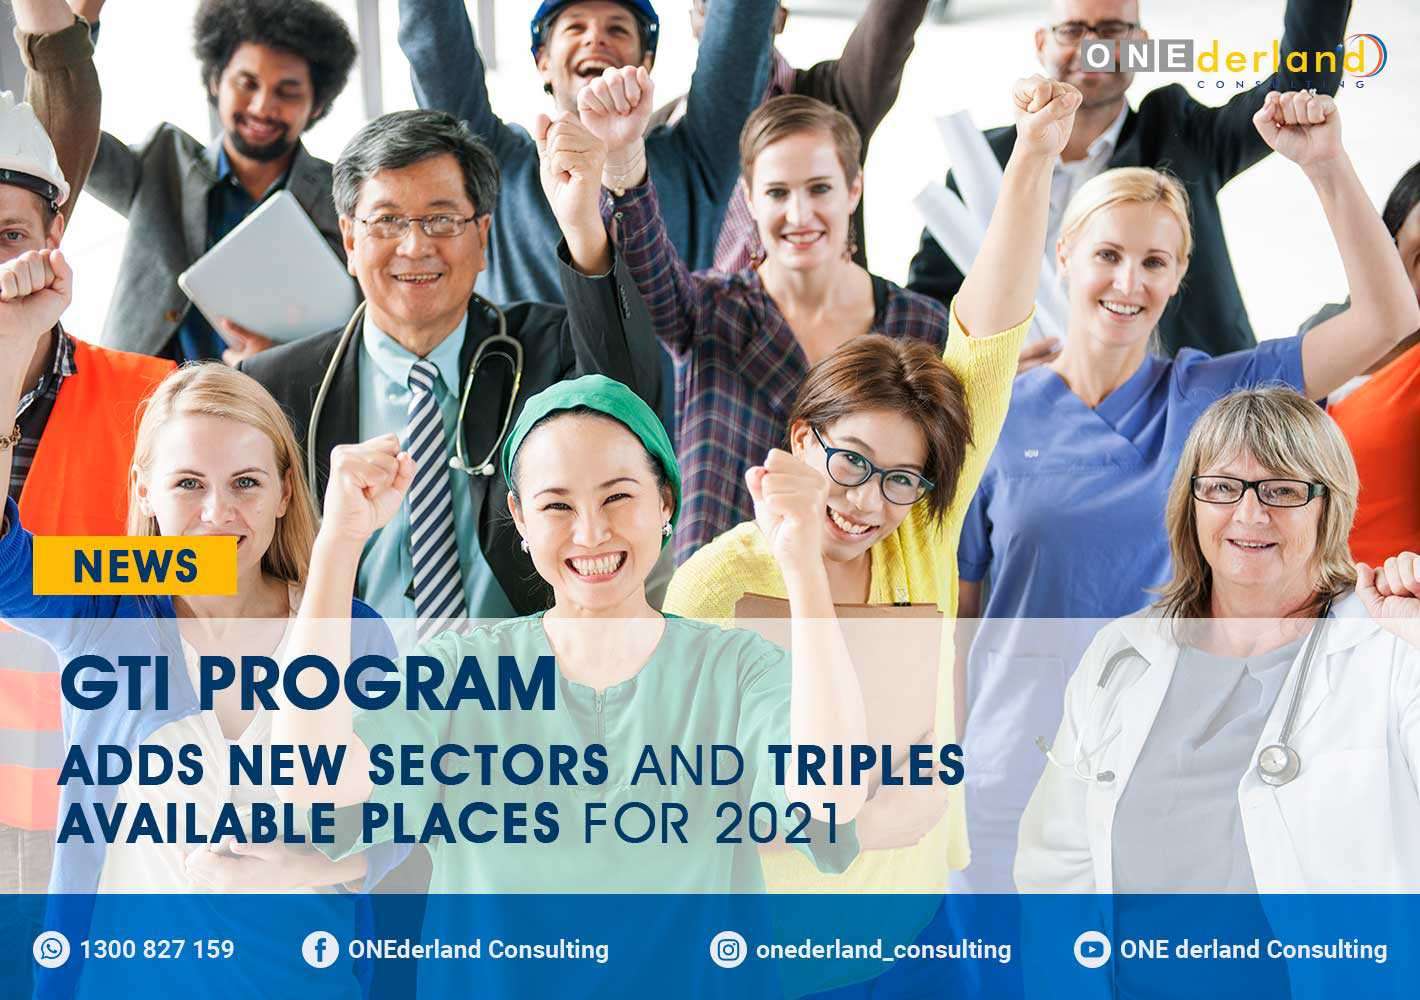 GTI Program Adds New Sectors And Triples Available Places For 2021